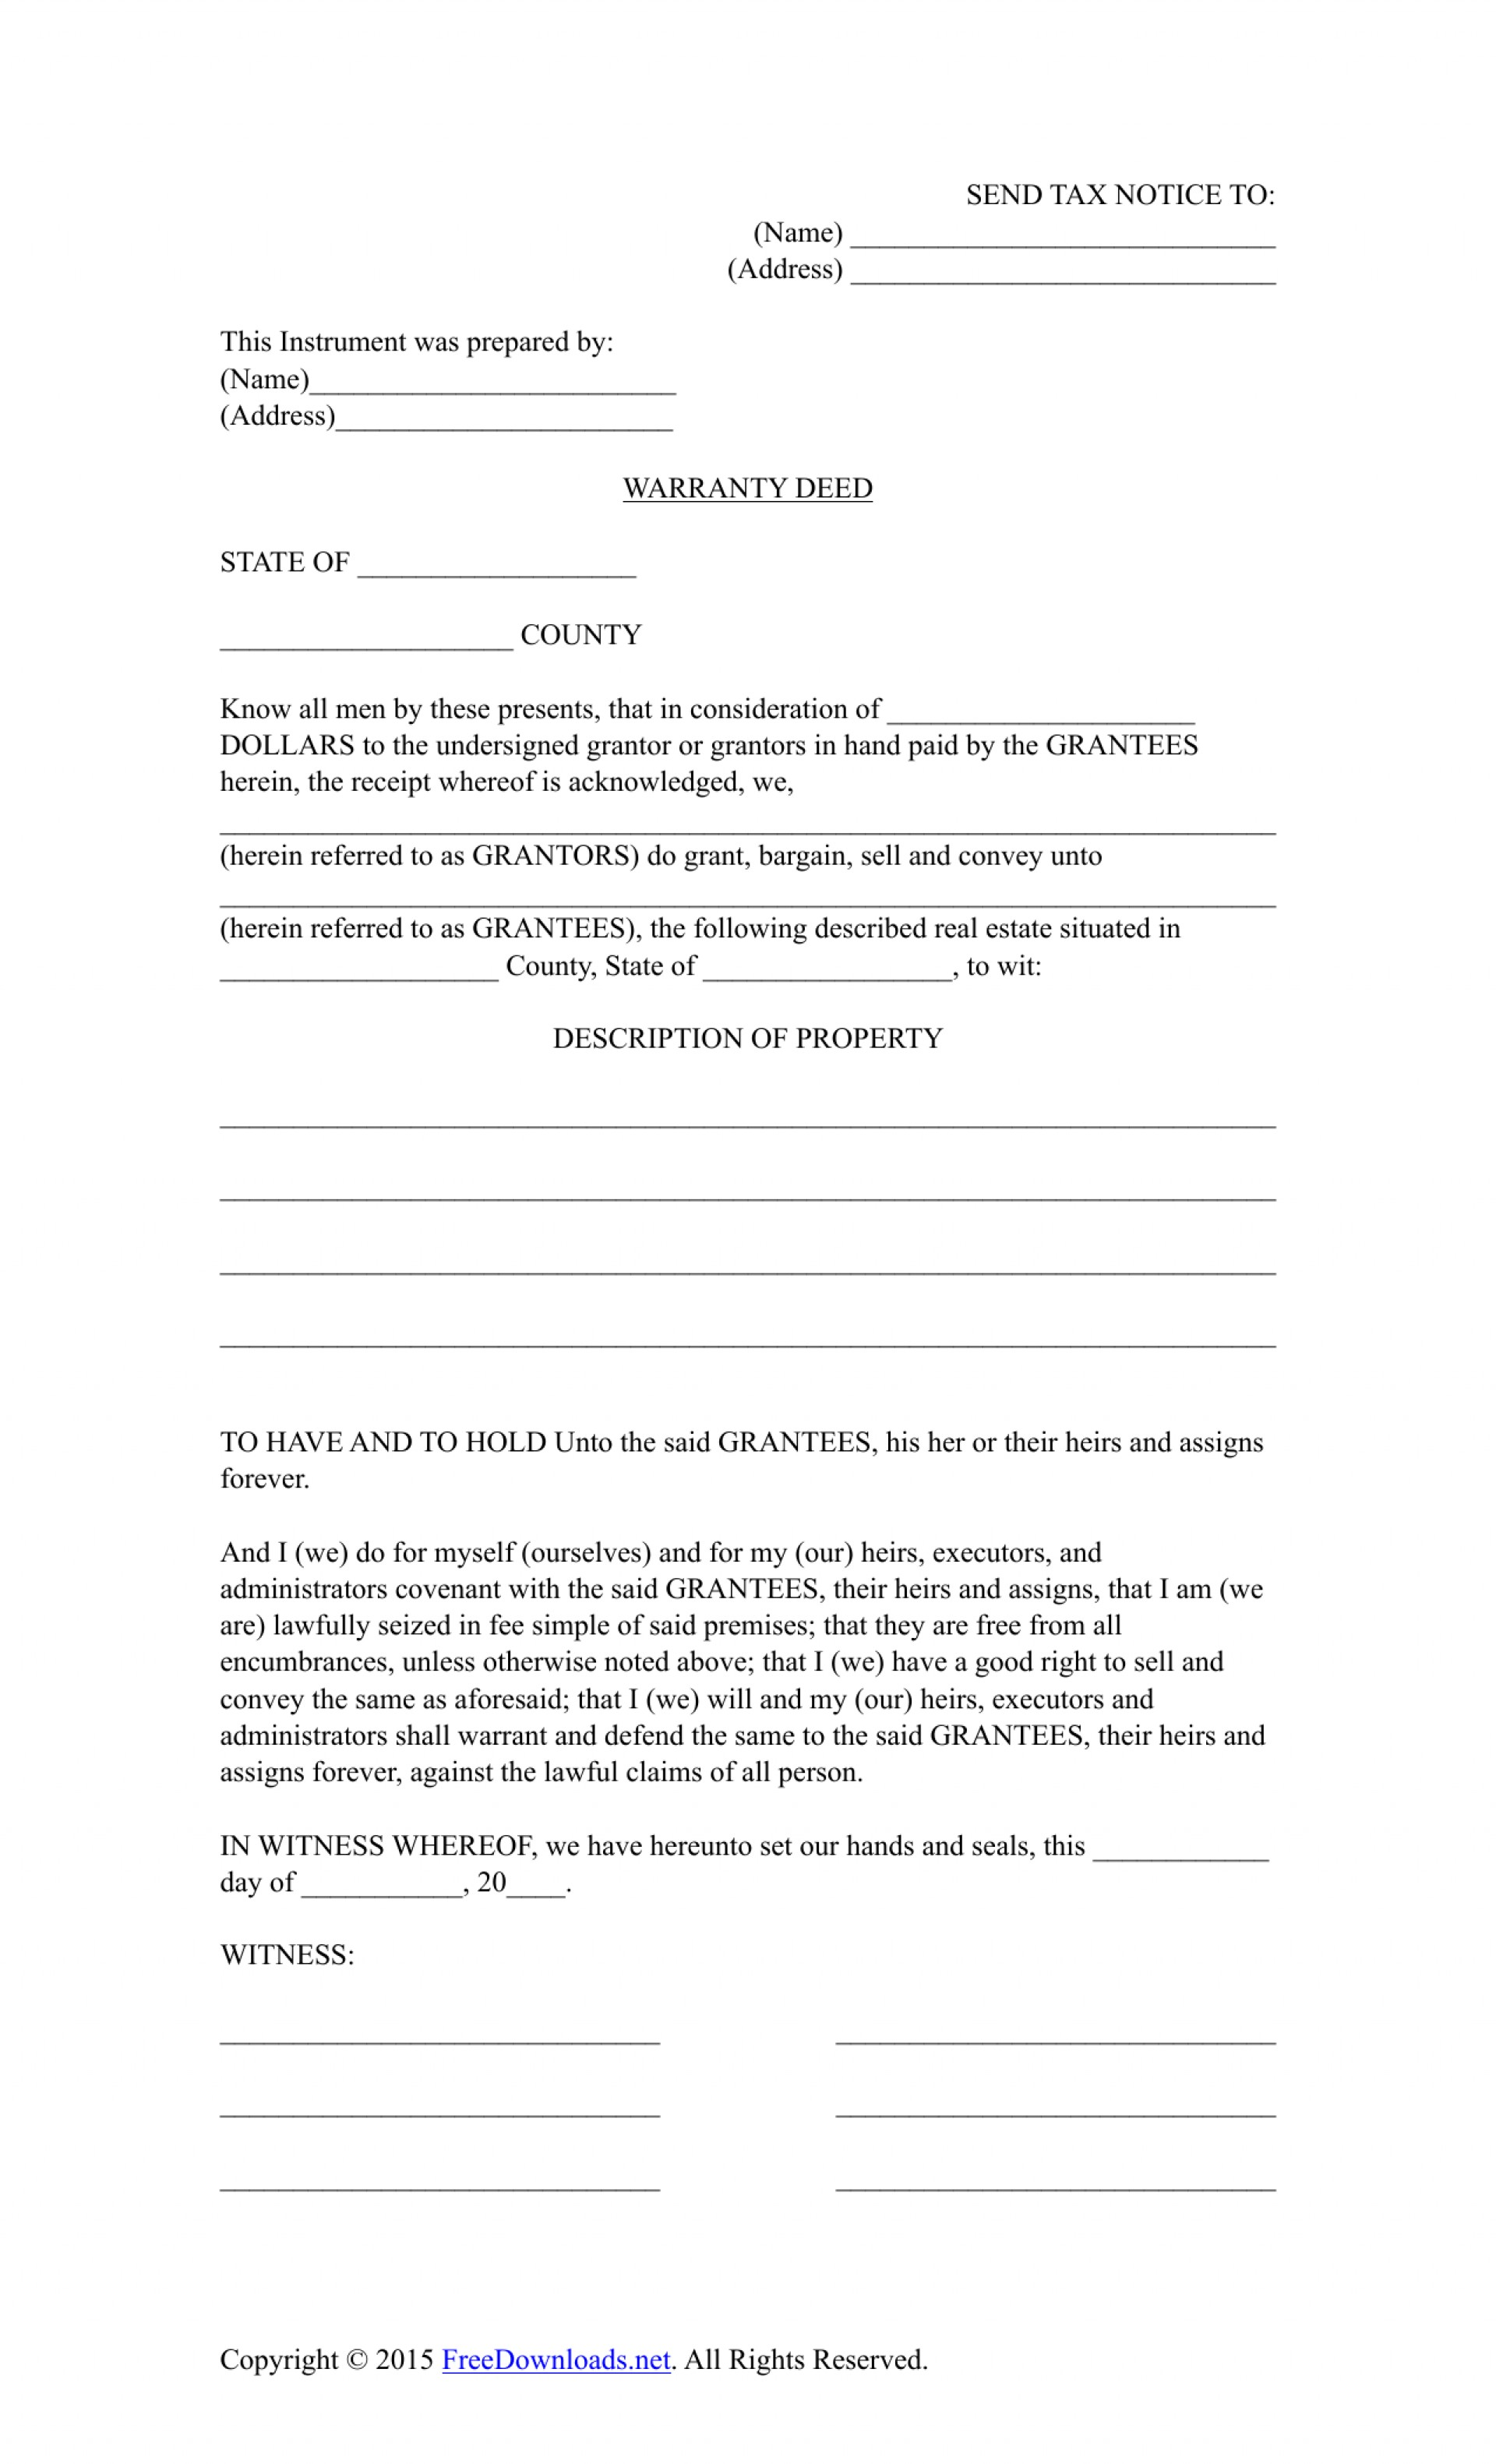 Michigan Warranty Deed Form Pdf